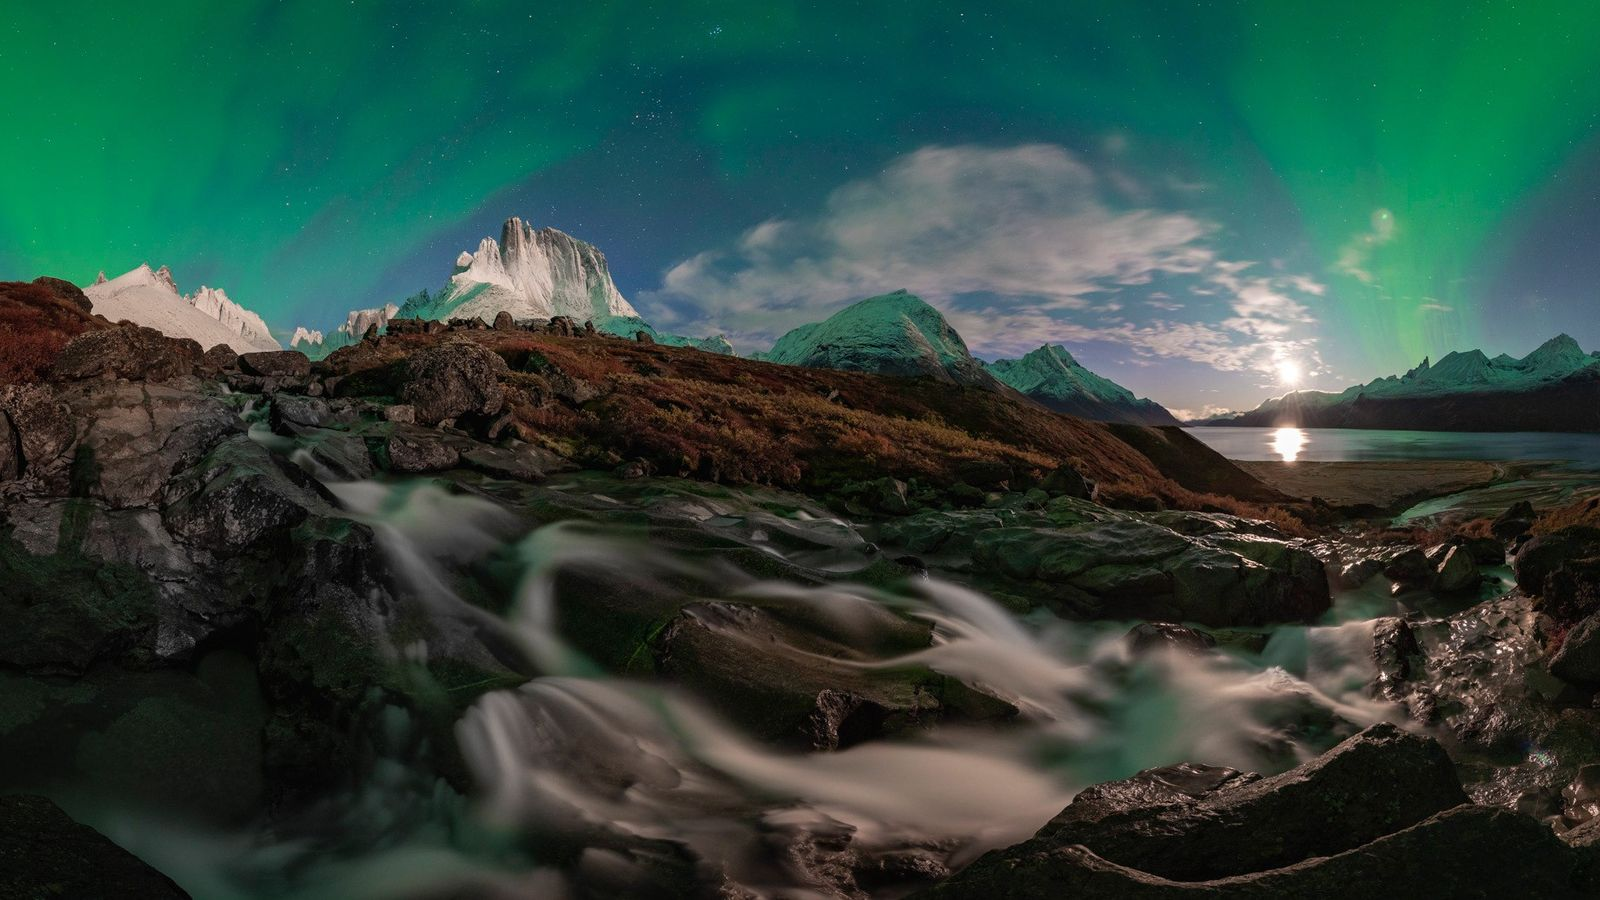 An aurora blazes against the night sky near the Tasermiut Fjord. The fjord has well-known mountains, ...